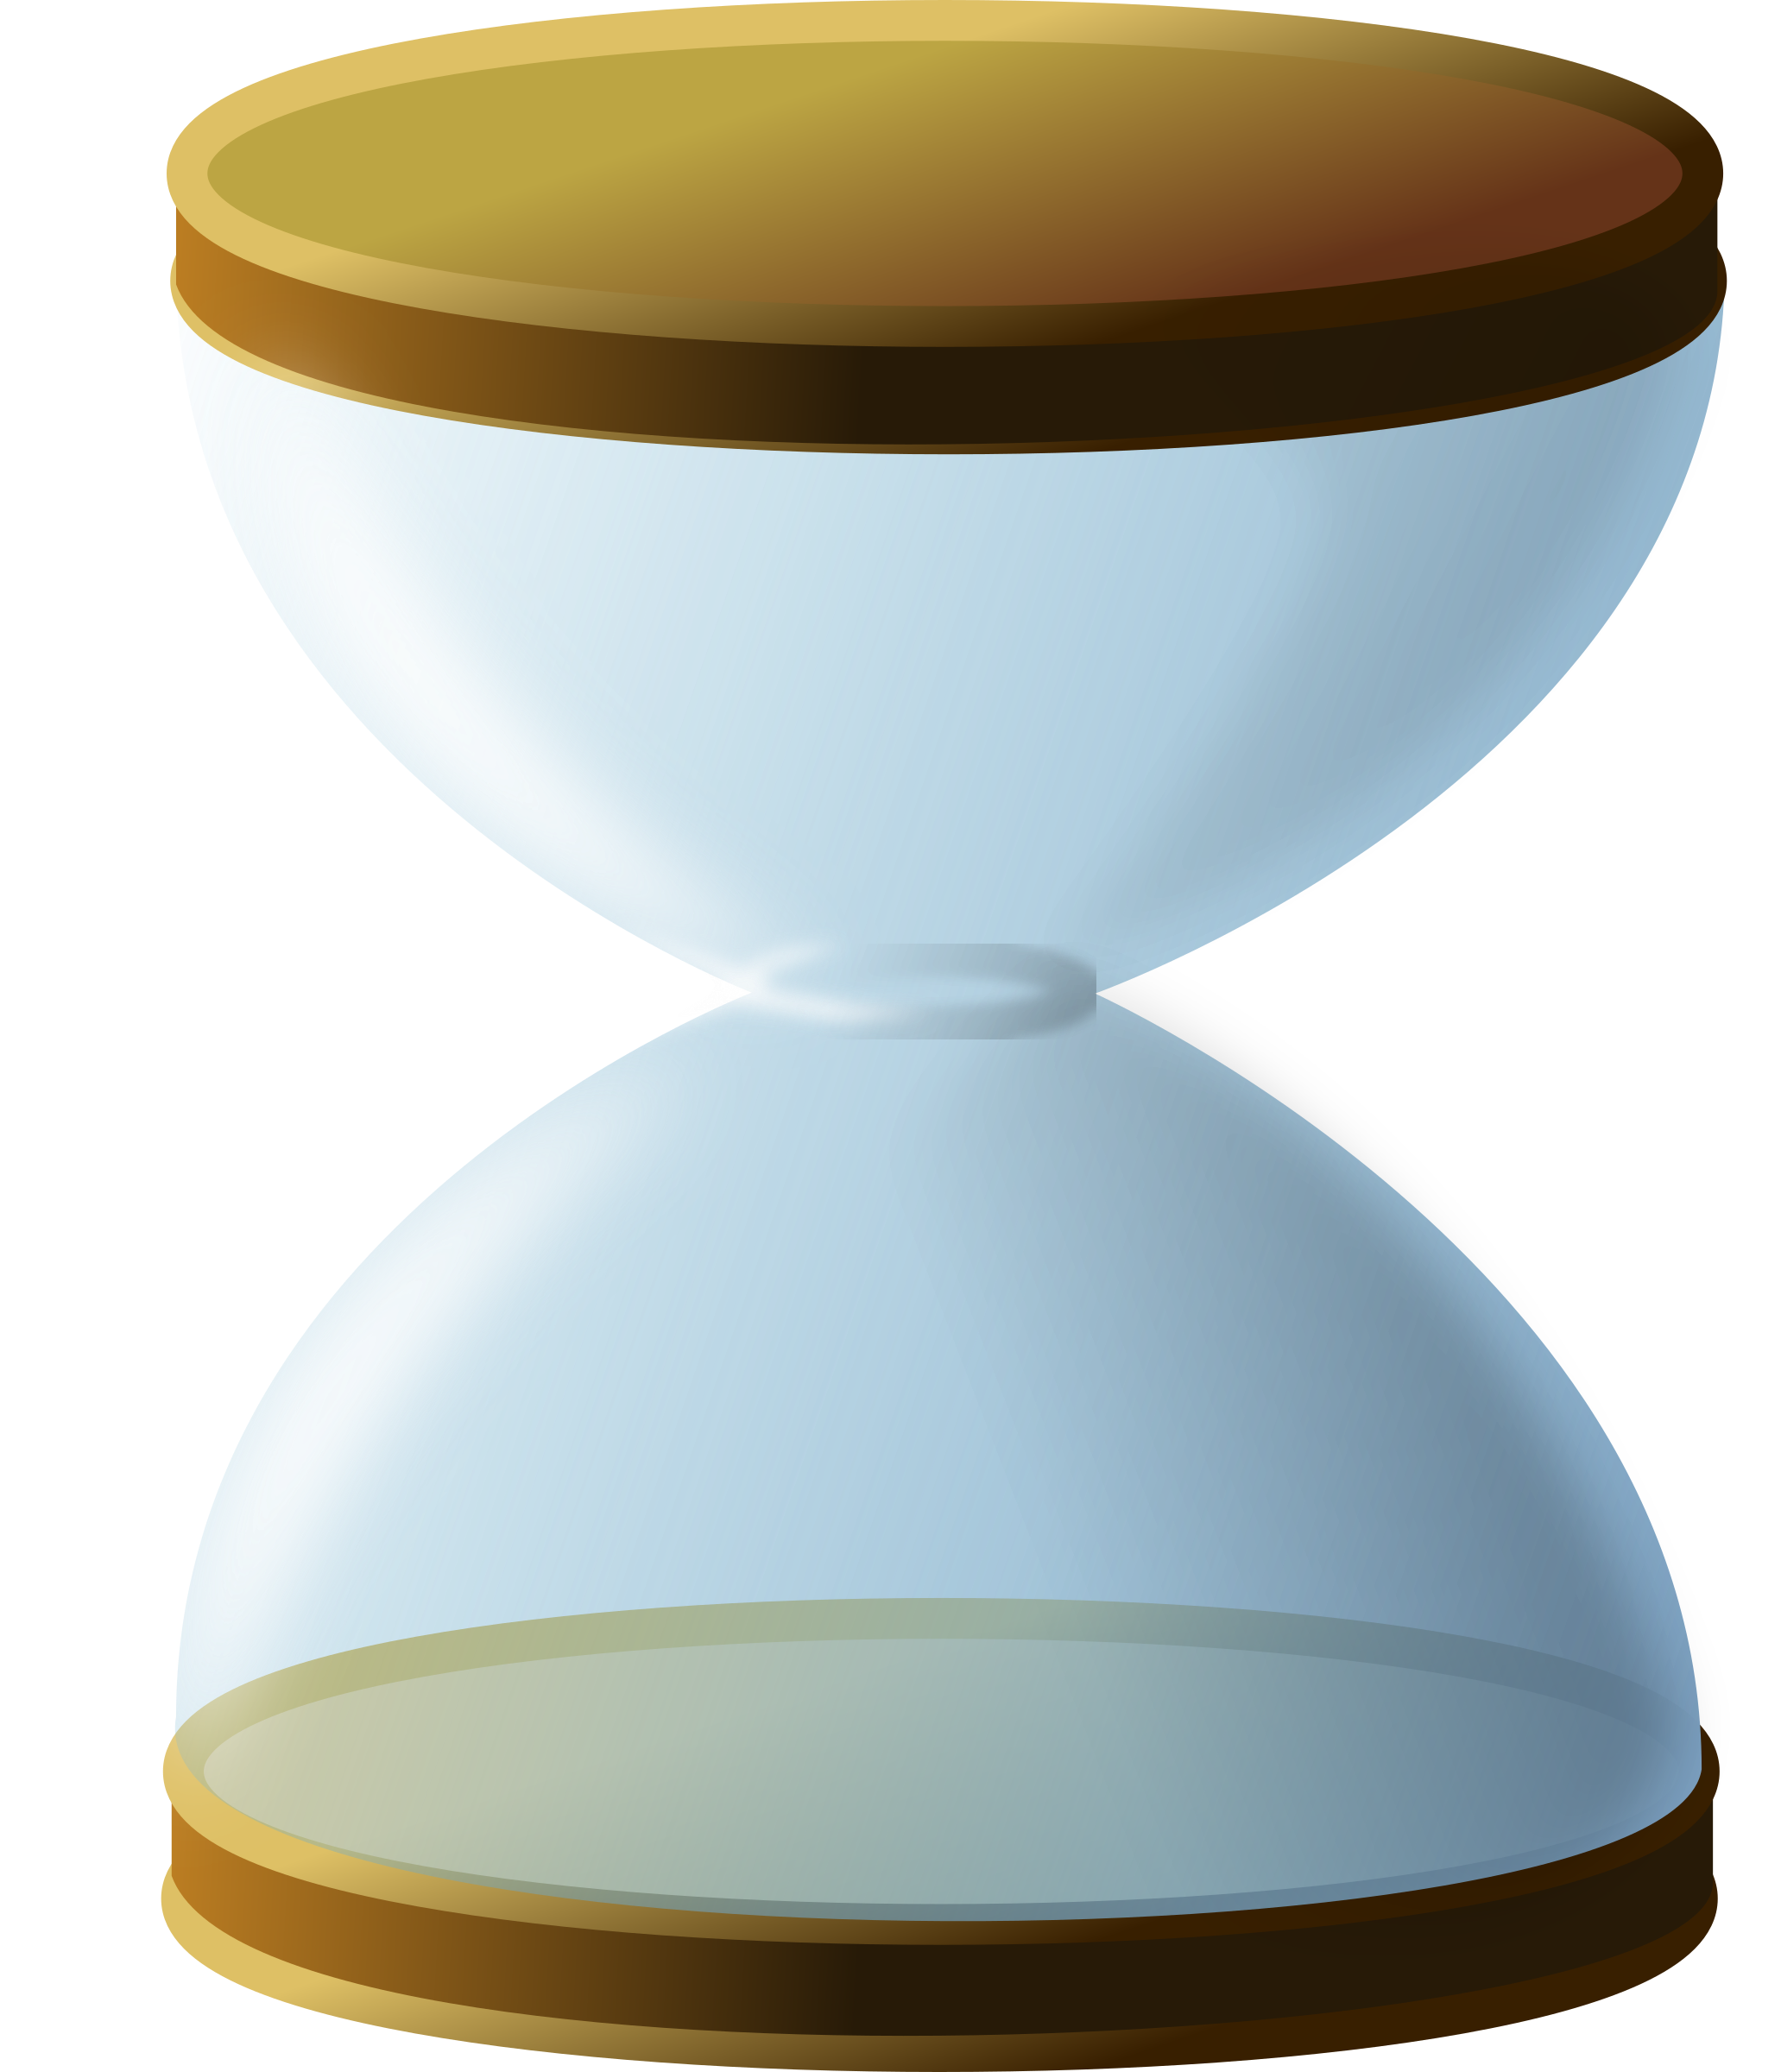 Sand-less Hourglass by GDJ